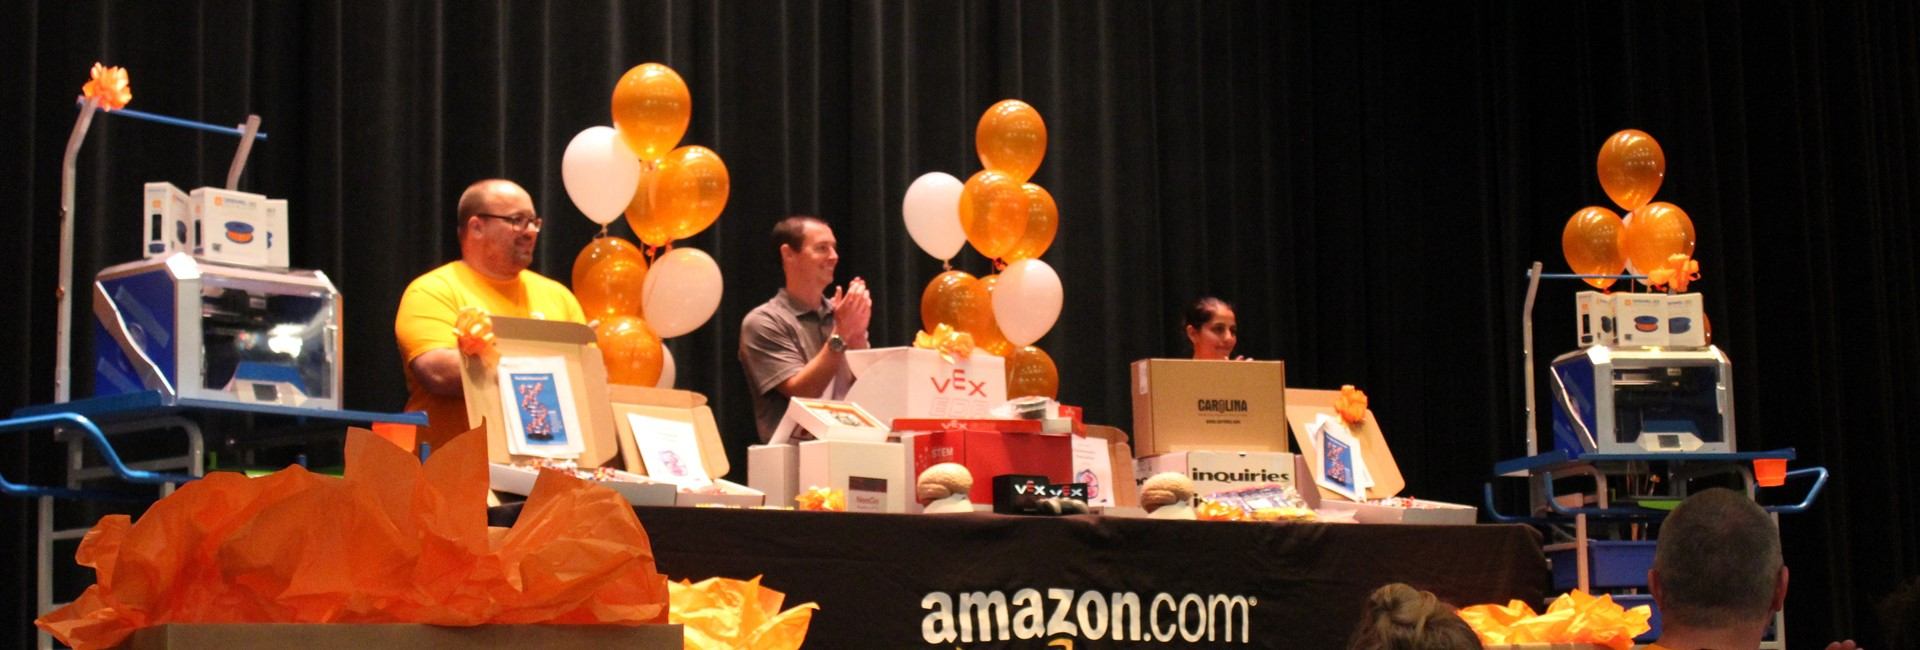 Amazon Donates $10,000 of STEM Equipment to Holmes Middle School